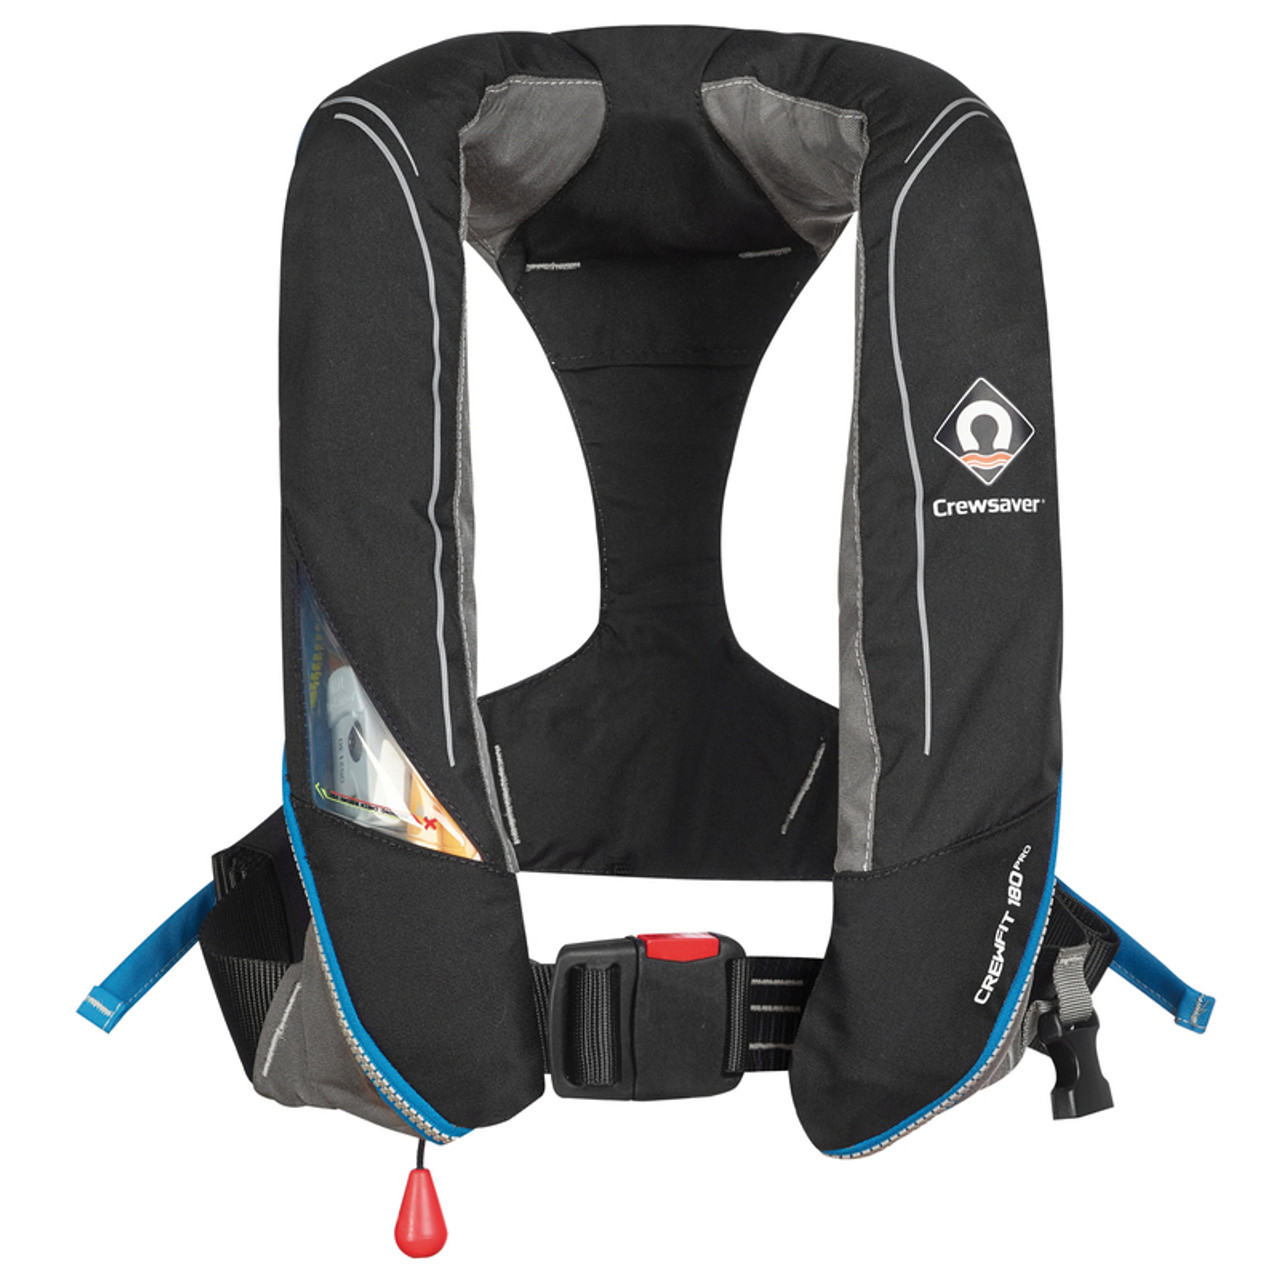 Crewsaver Crewfit 180N Pro Manual Non Harness Lifejacket